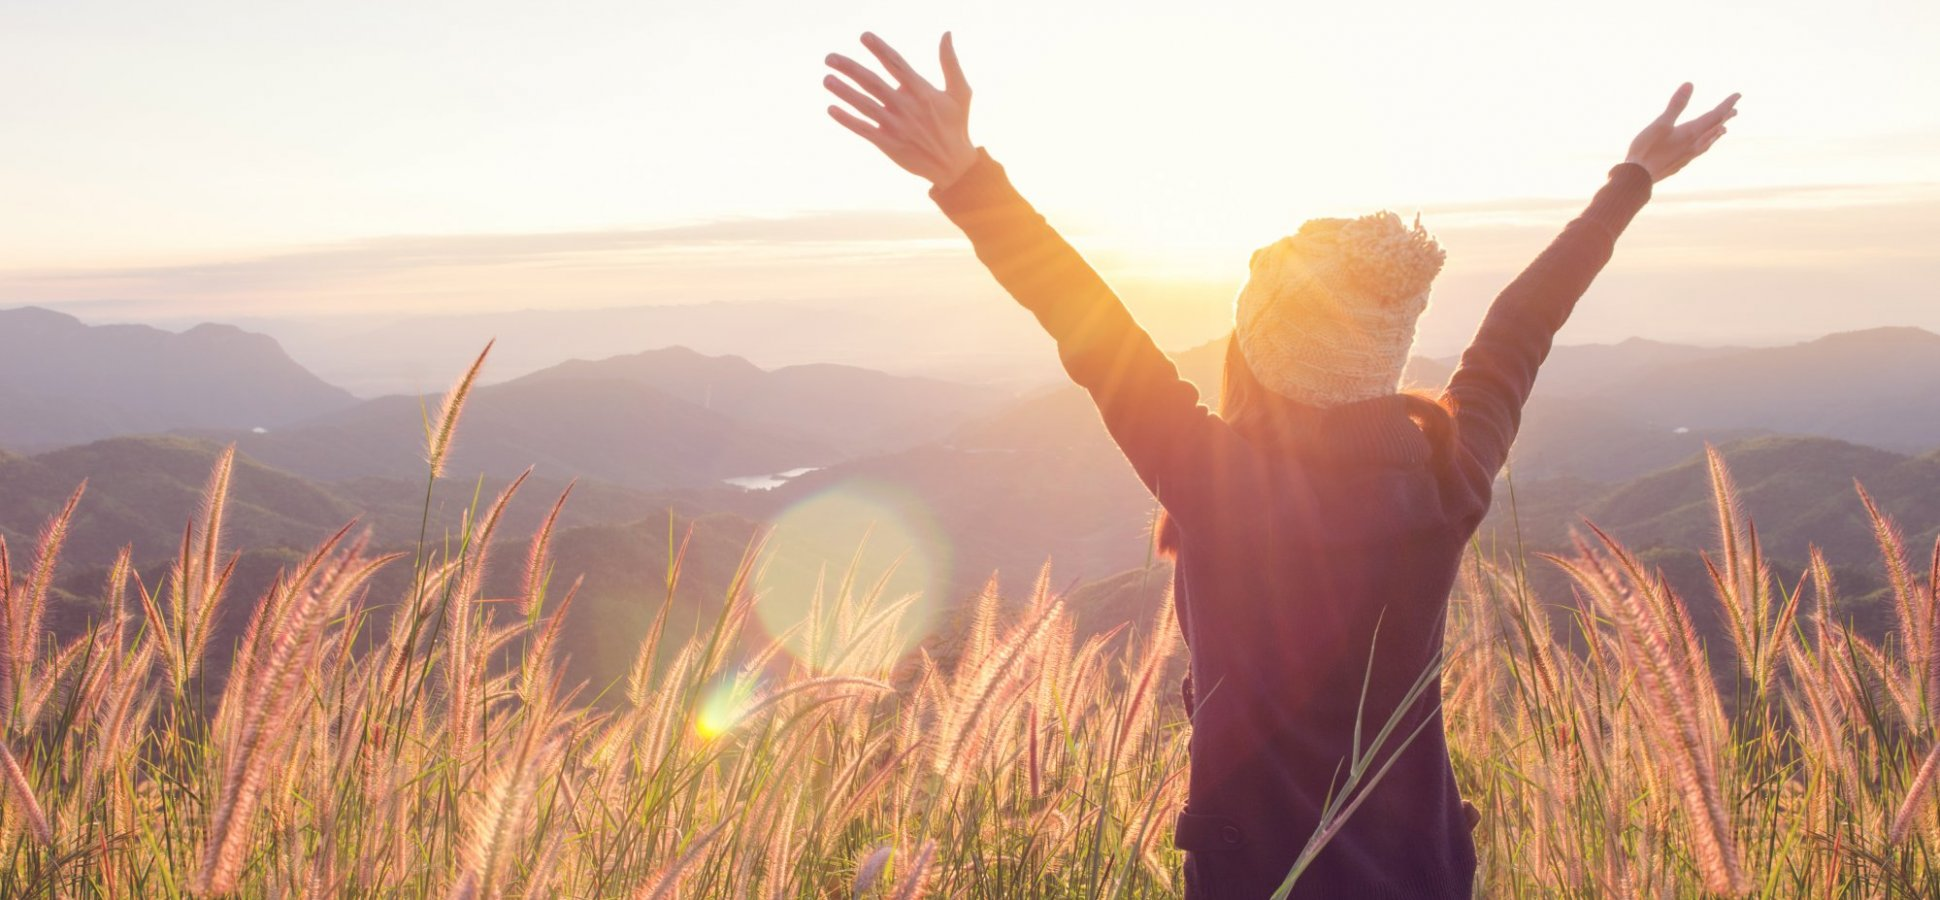 4 Truths You Need to Accept If You Want to Lead a Happier Life